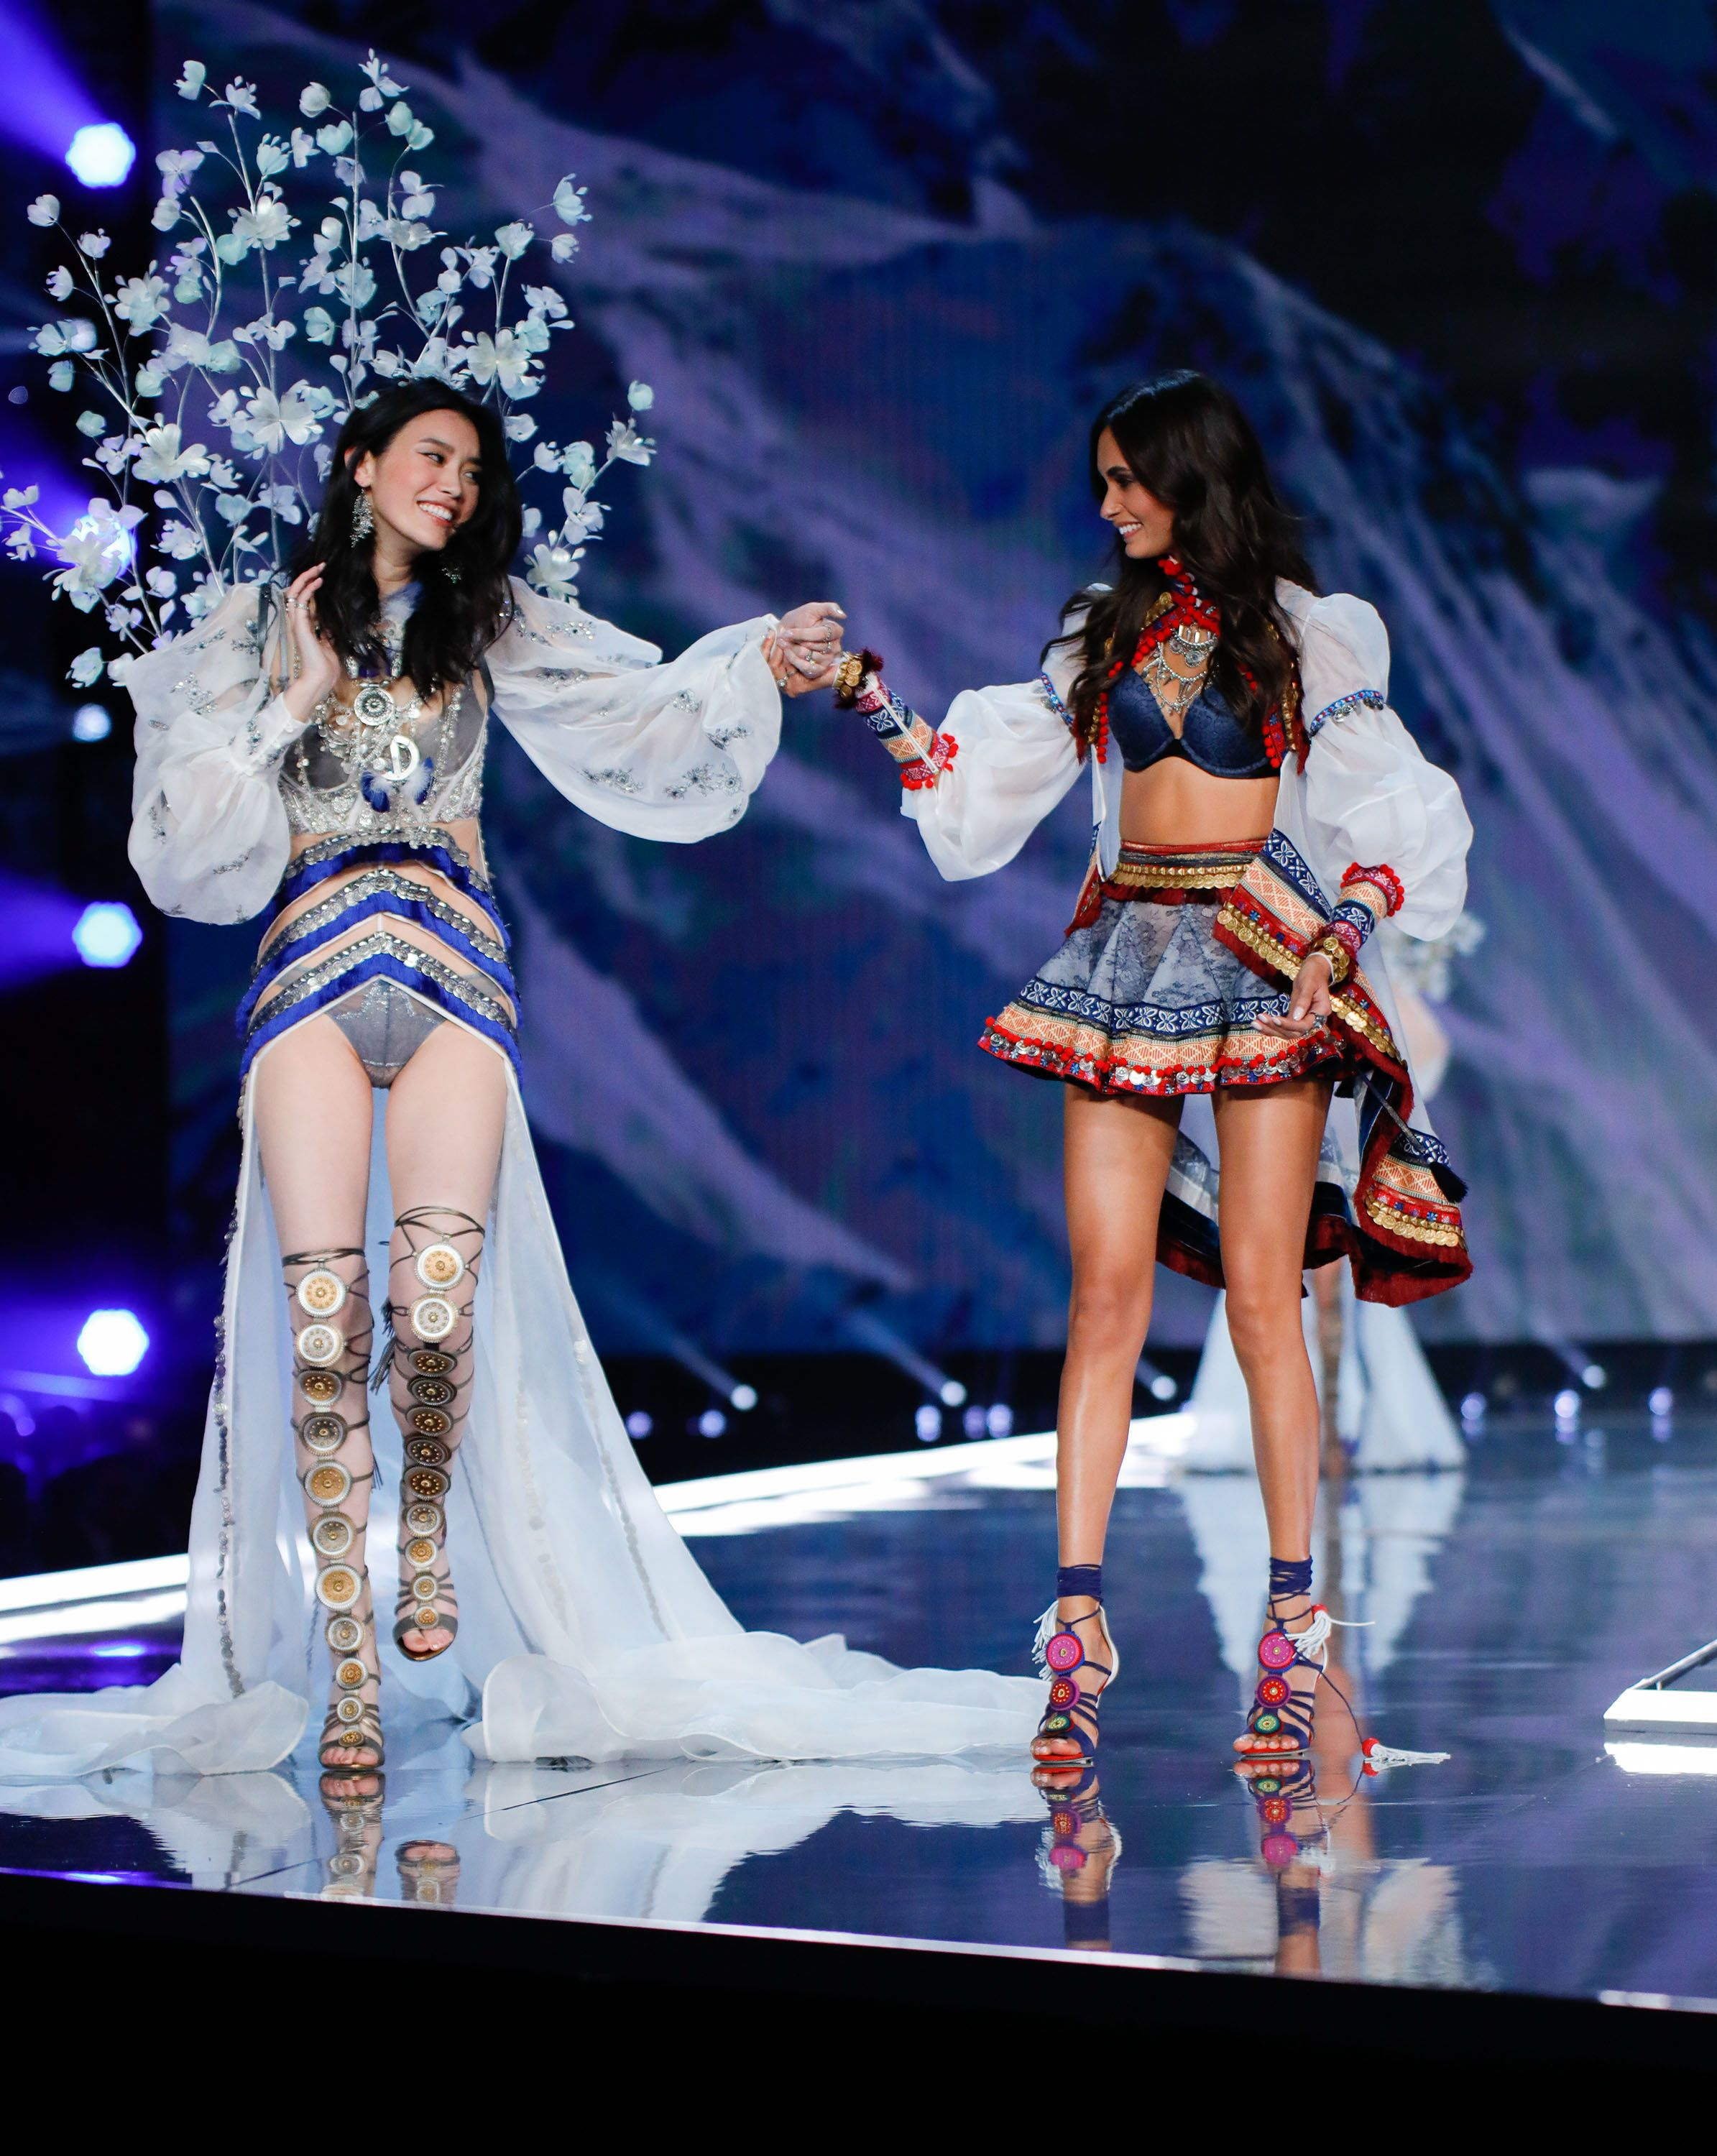 Victoria's Secret Models Prove The Power Of Female Support After Catwalk